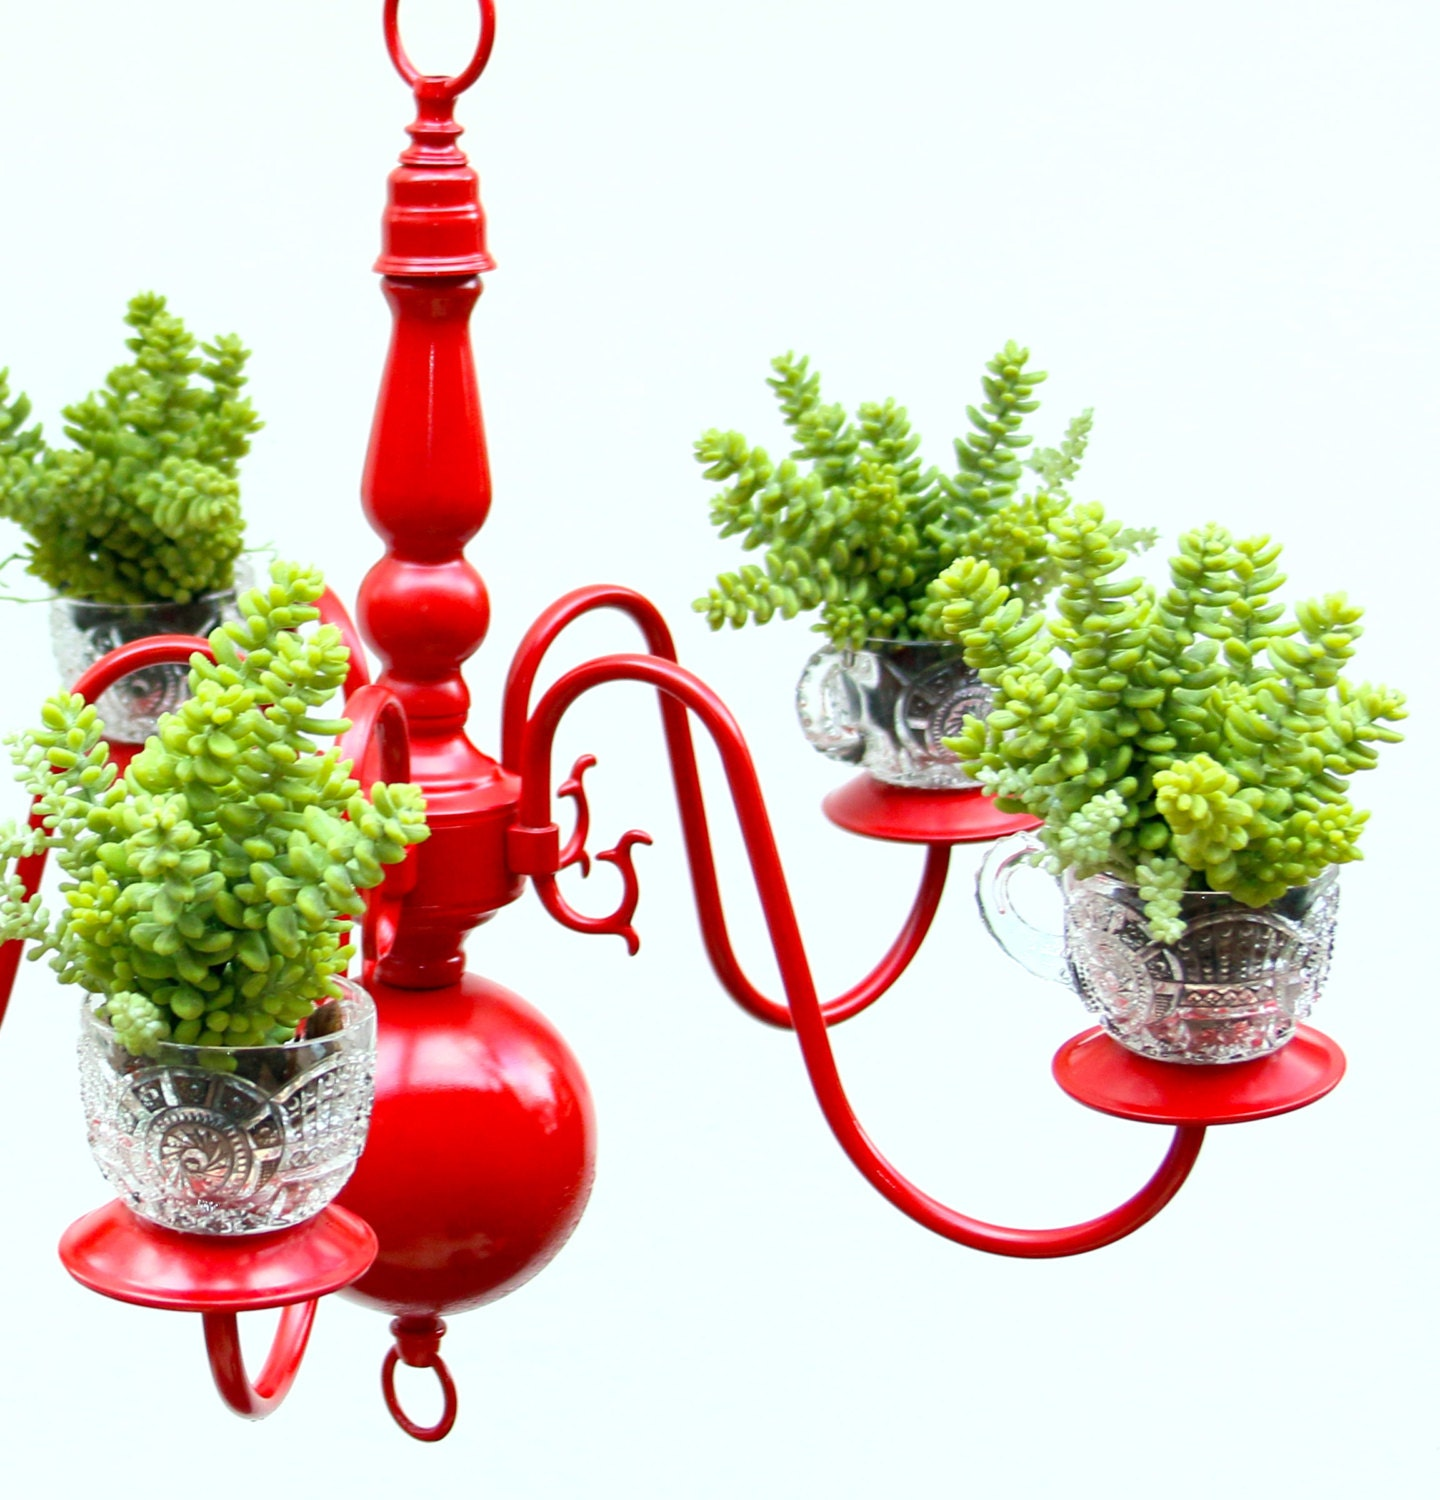 Hanging Light With Planter: Chandelier Succulent Planter Recycled Lighting By NevaStarr